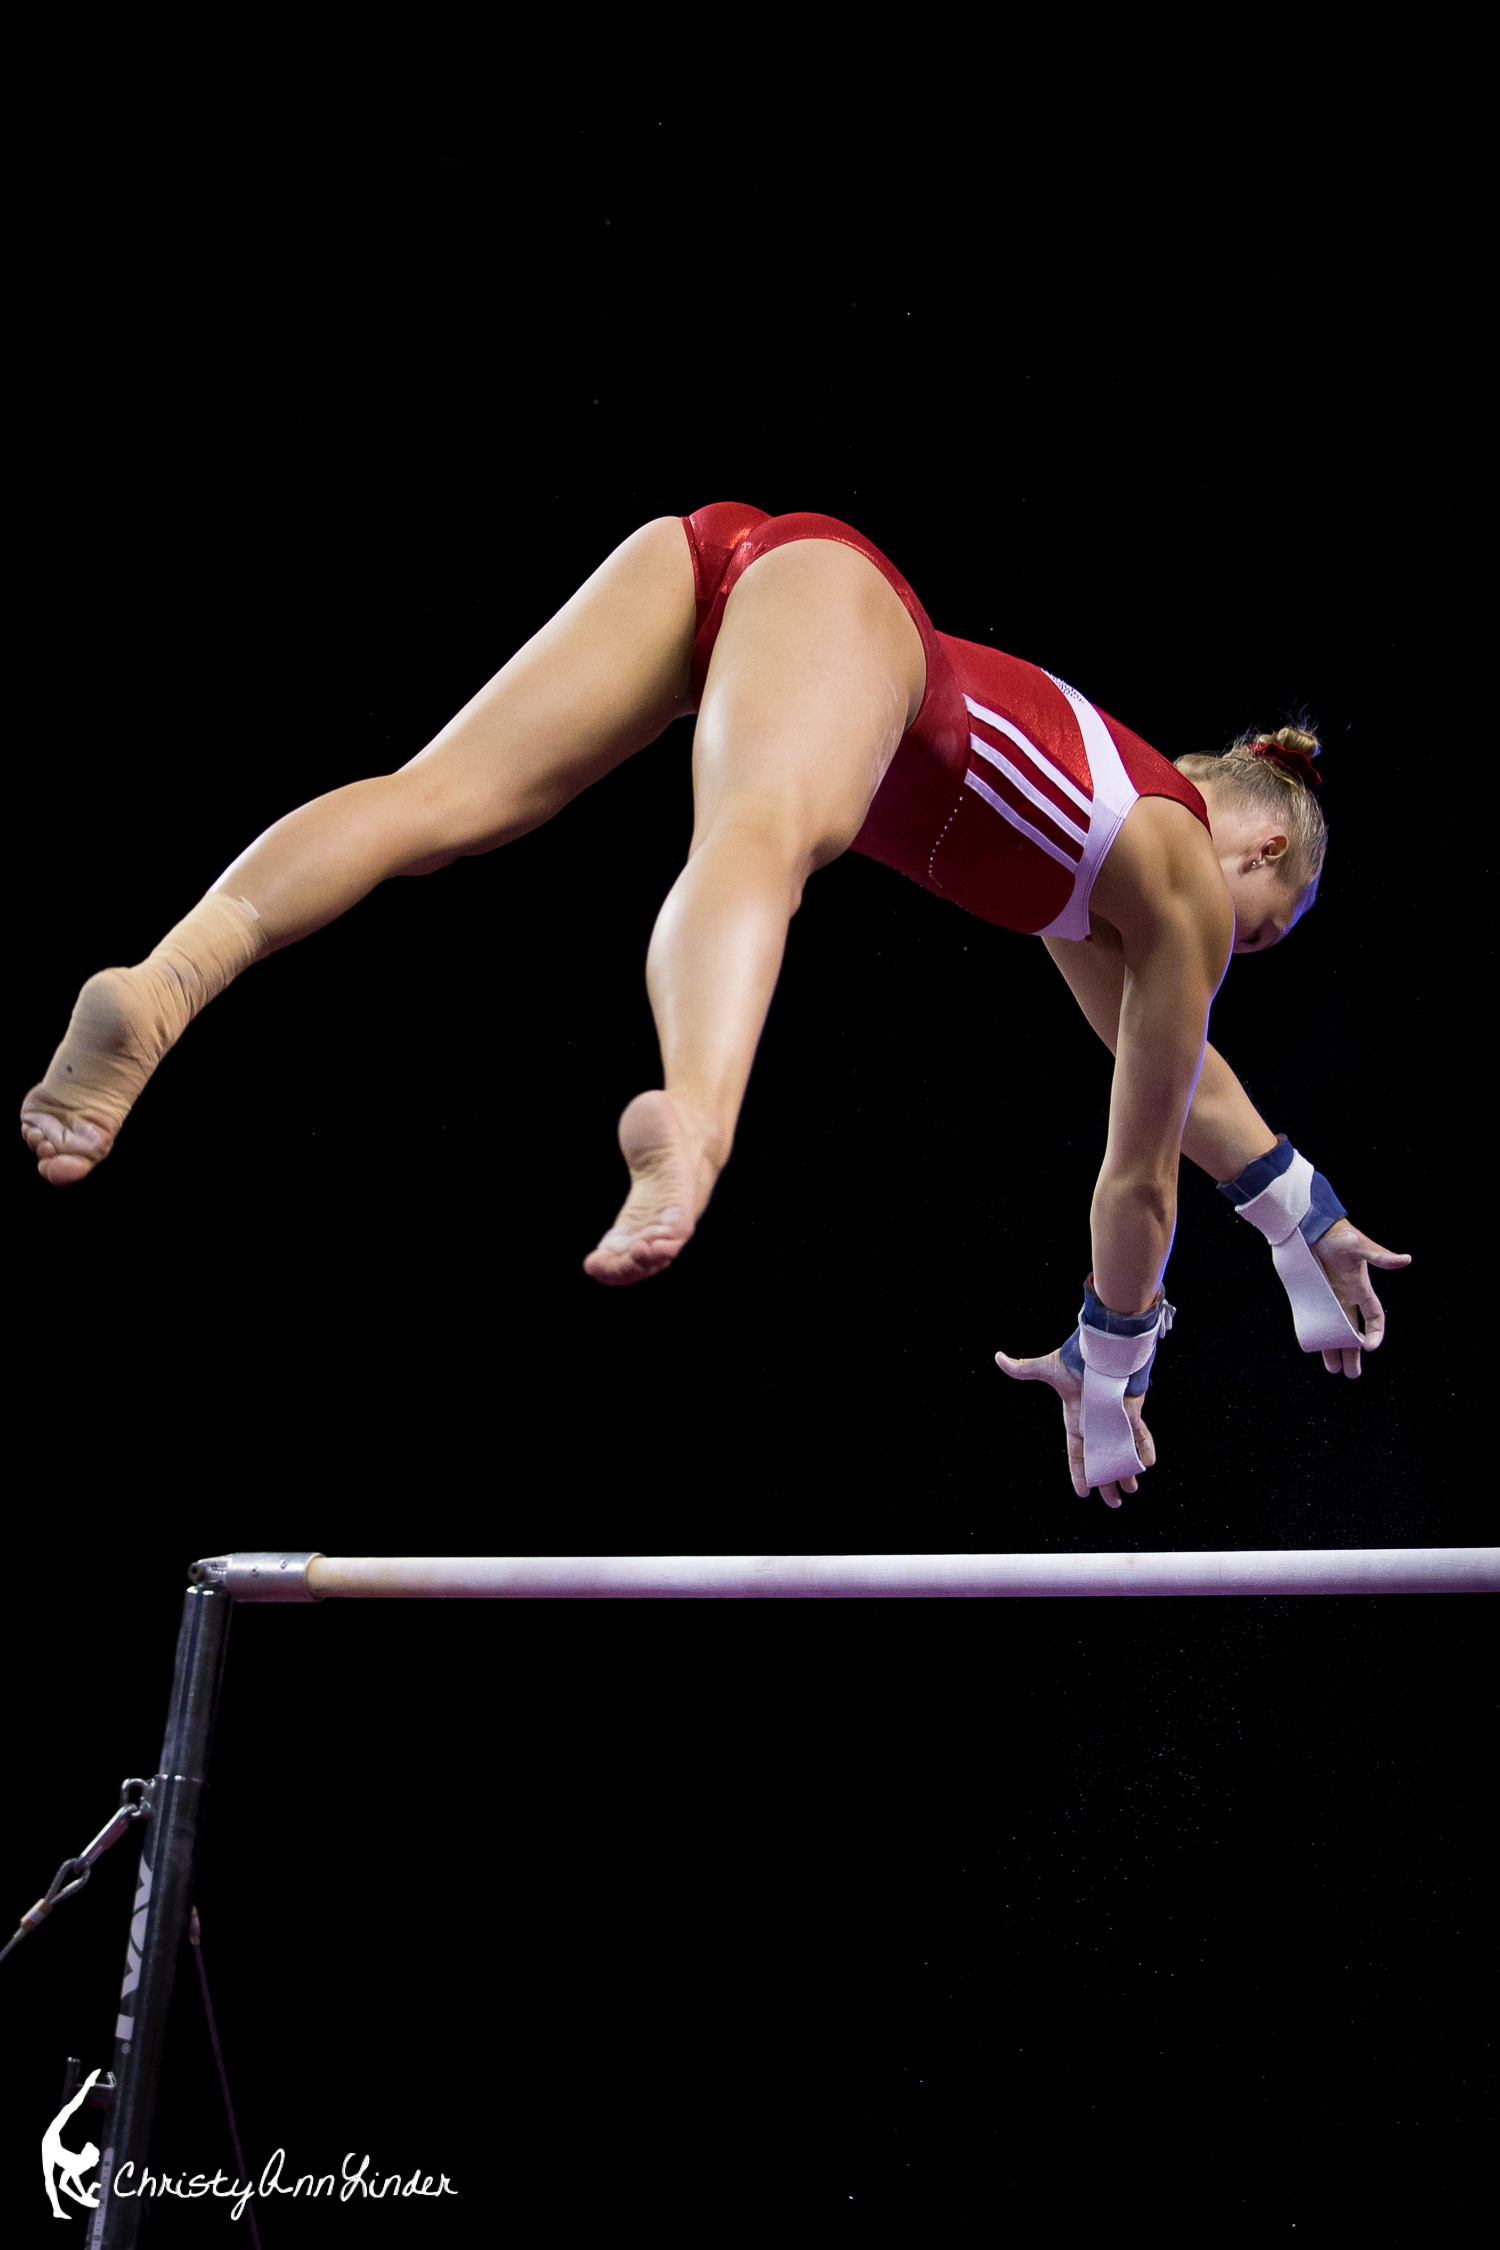 podium-training-secret-classic-82jpg